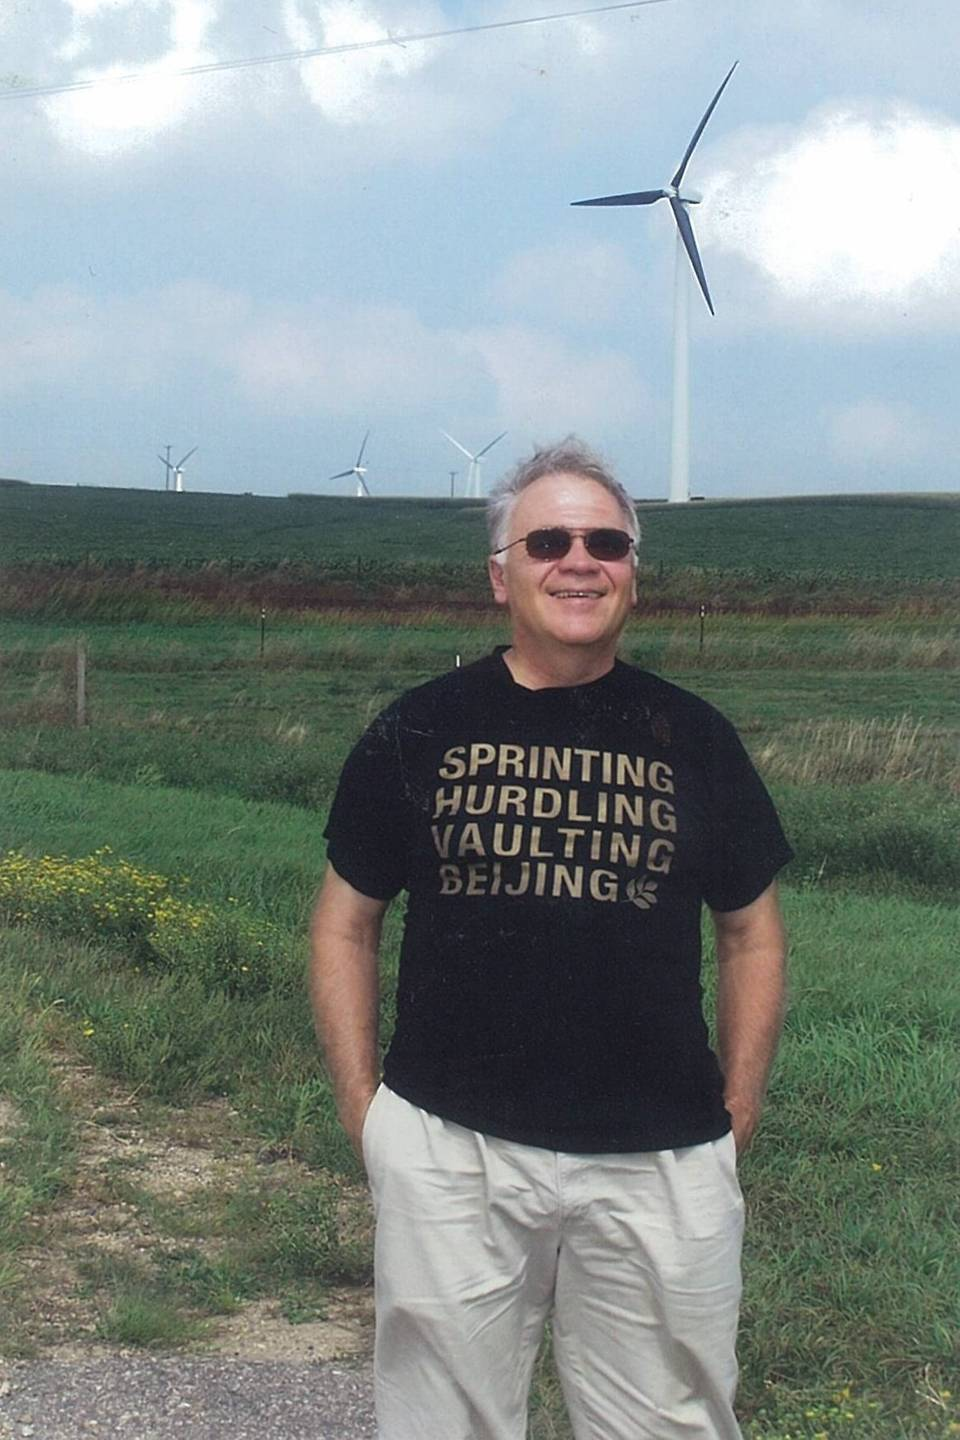 Older gentleman, modern day, standing in front of a field with a wind turbine.